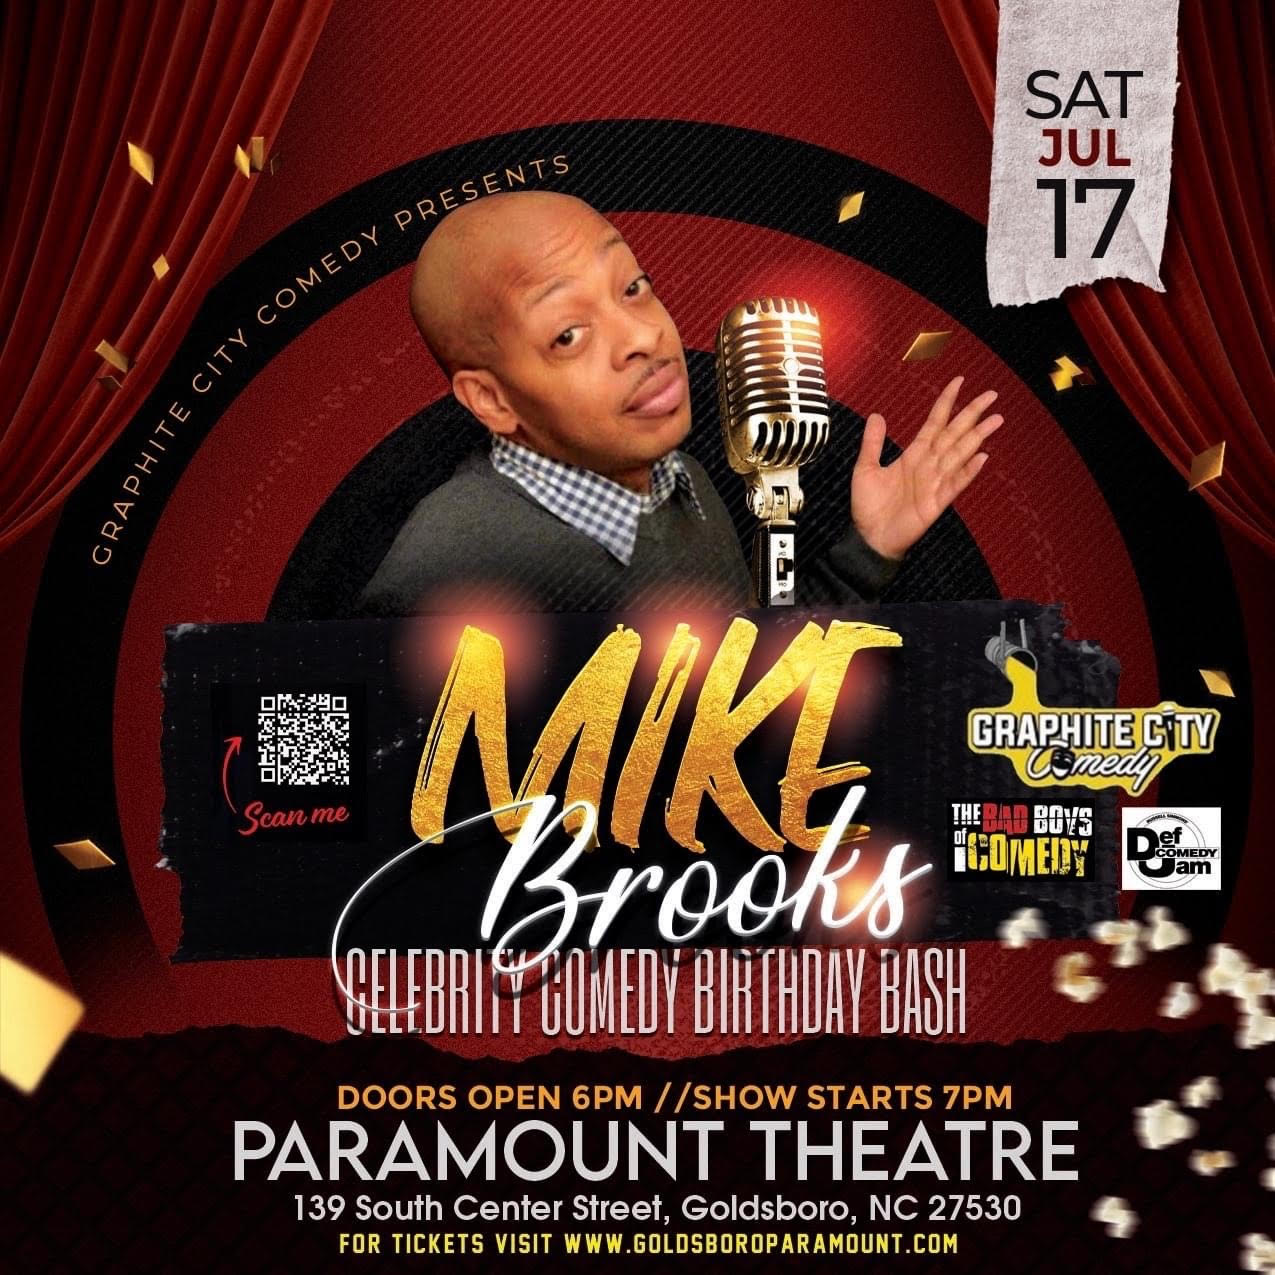 Mike Brooks Celebrity Comedy Birthday Bash at the Paramount Theatre in Goldsboro